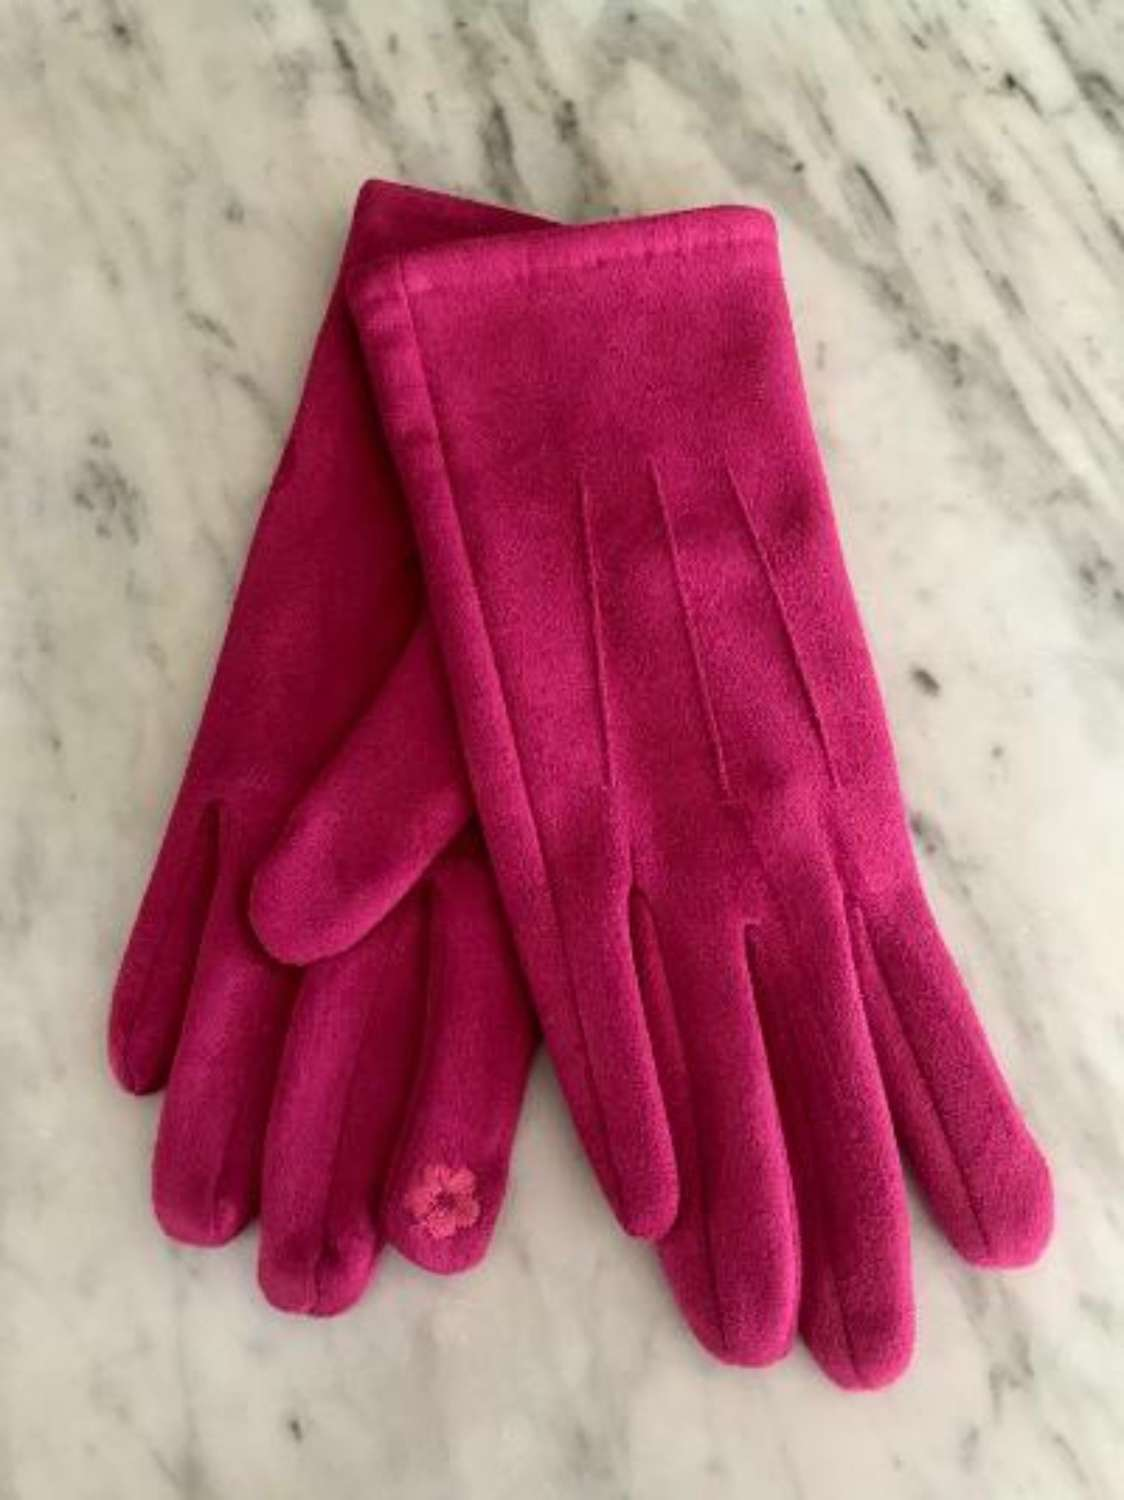 Fuchsia gloves